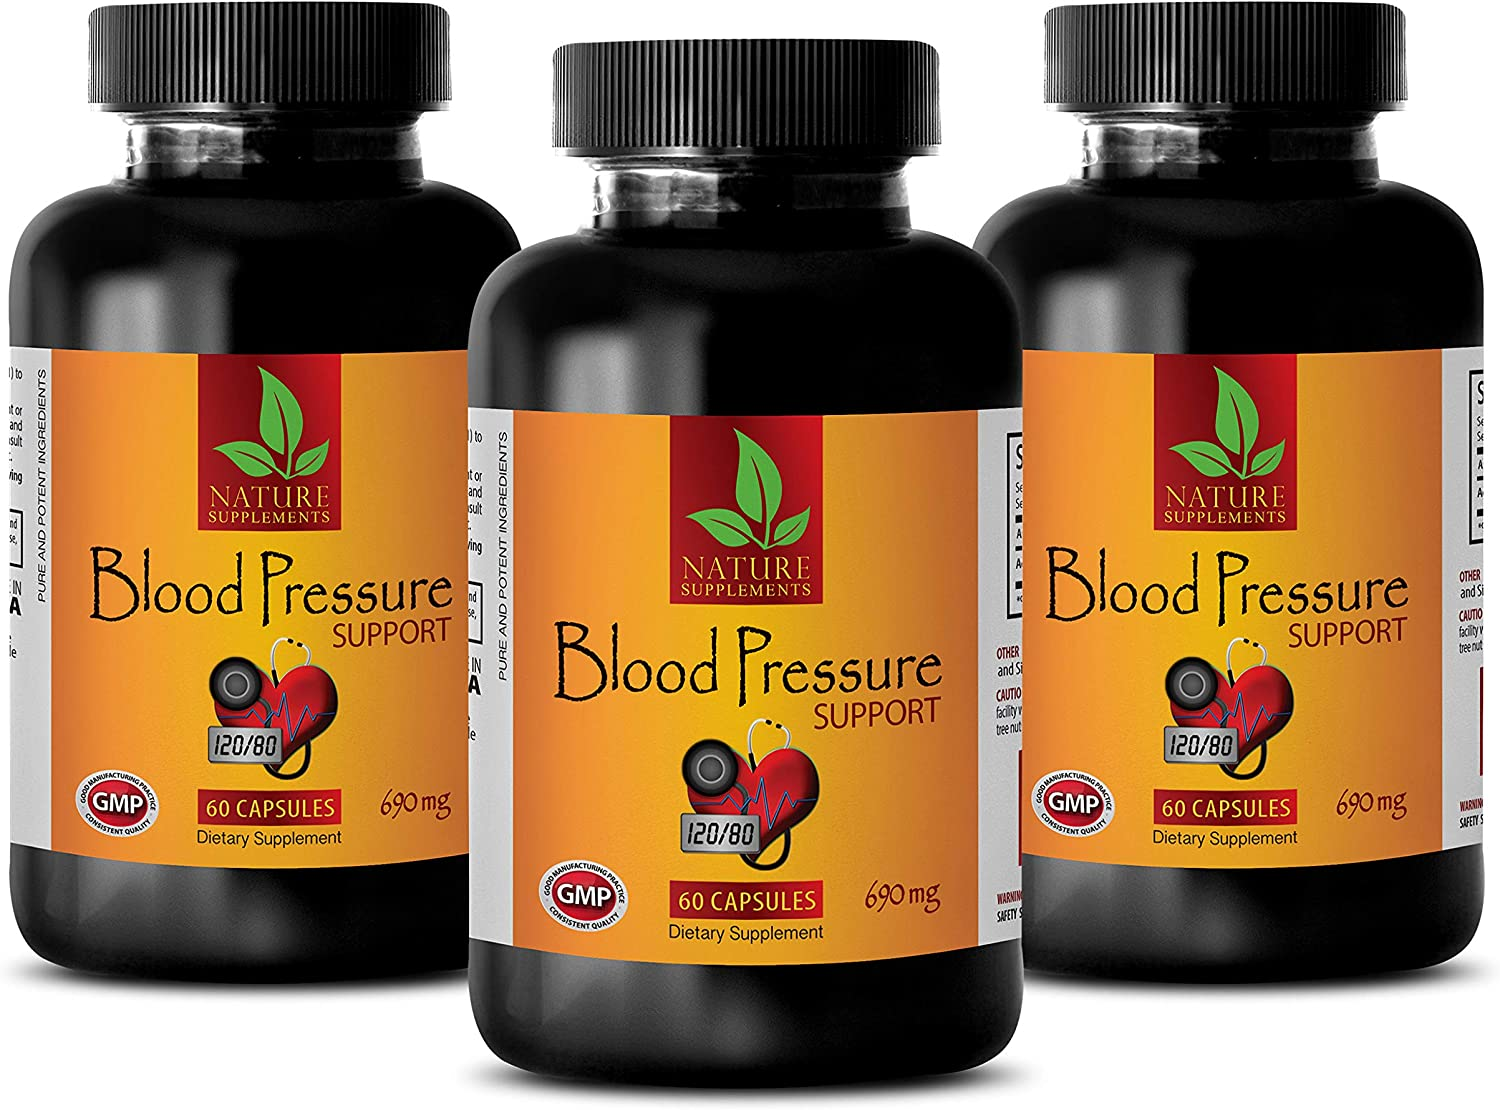 Natural Blood Pressure Solution Support 690 - Award Max 77% OFF Mg